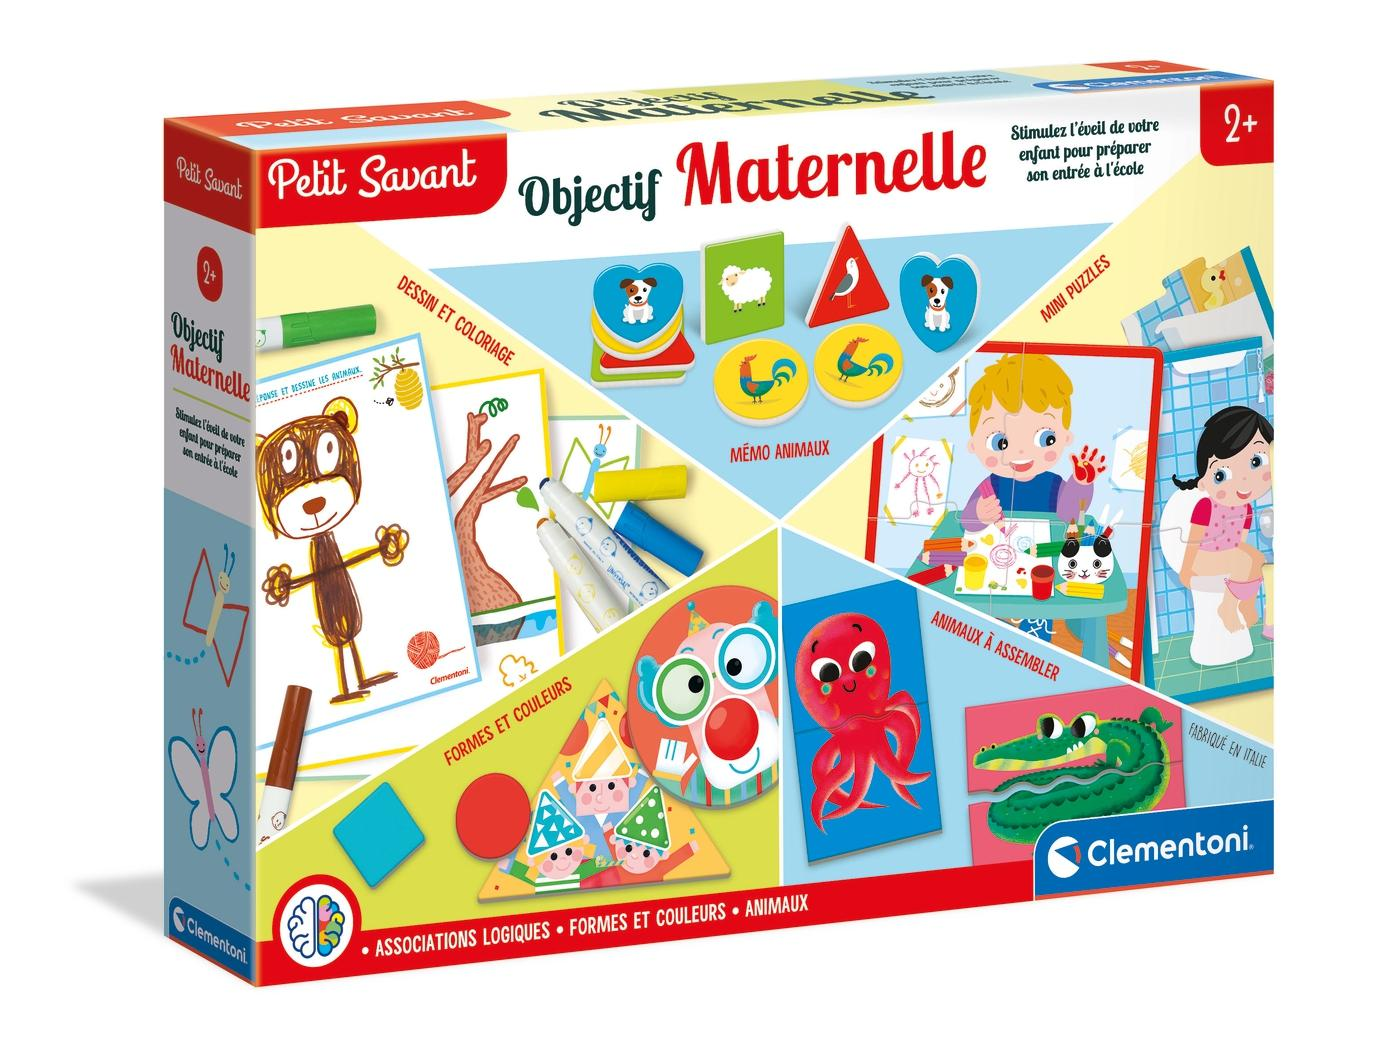 Objectif maternelle